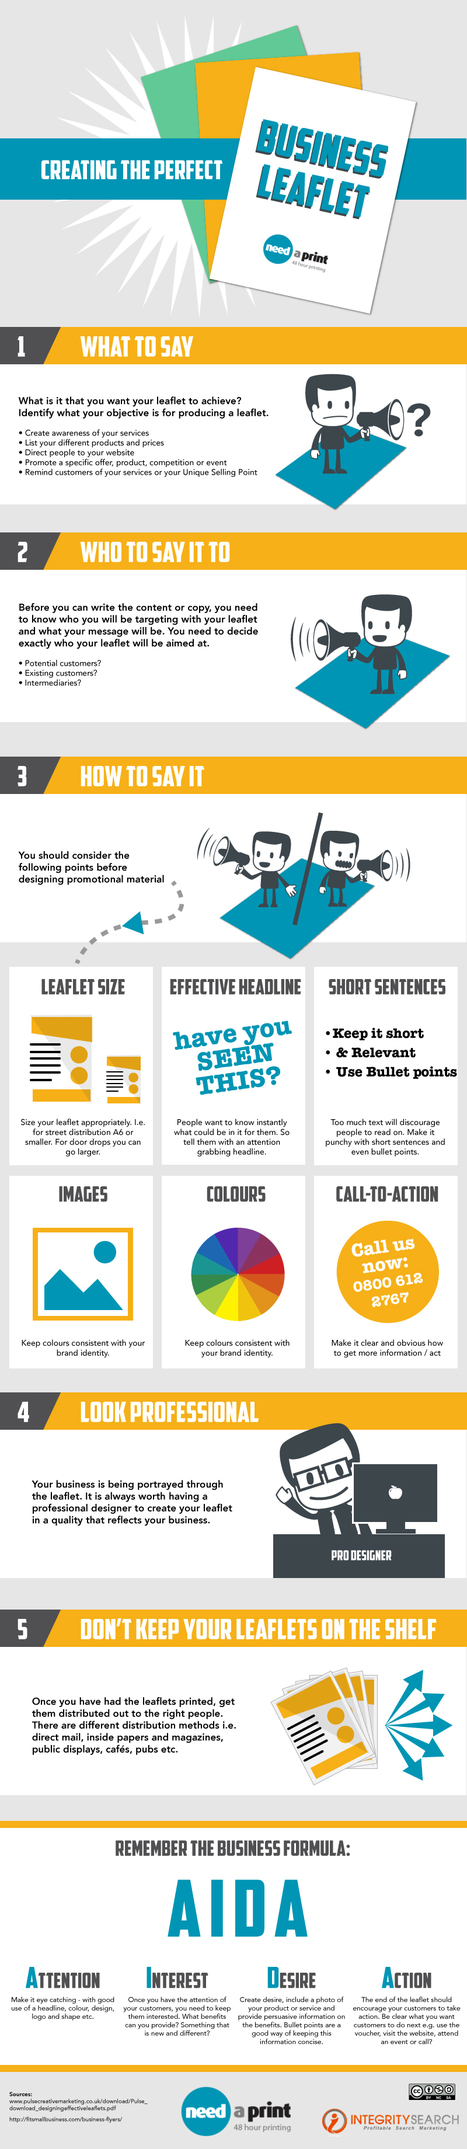 Creating The Perfect Business Leaflet | Content Creation, Curation, Management | Scoop.it